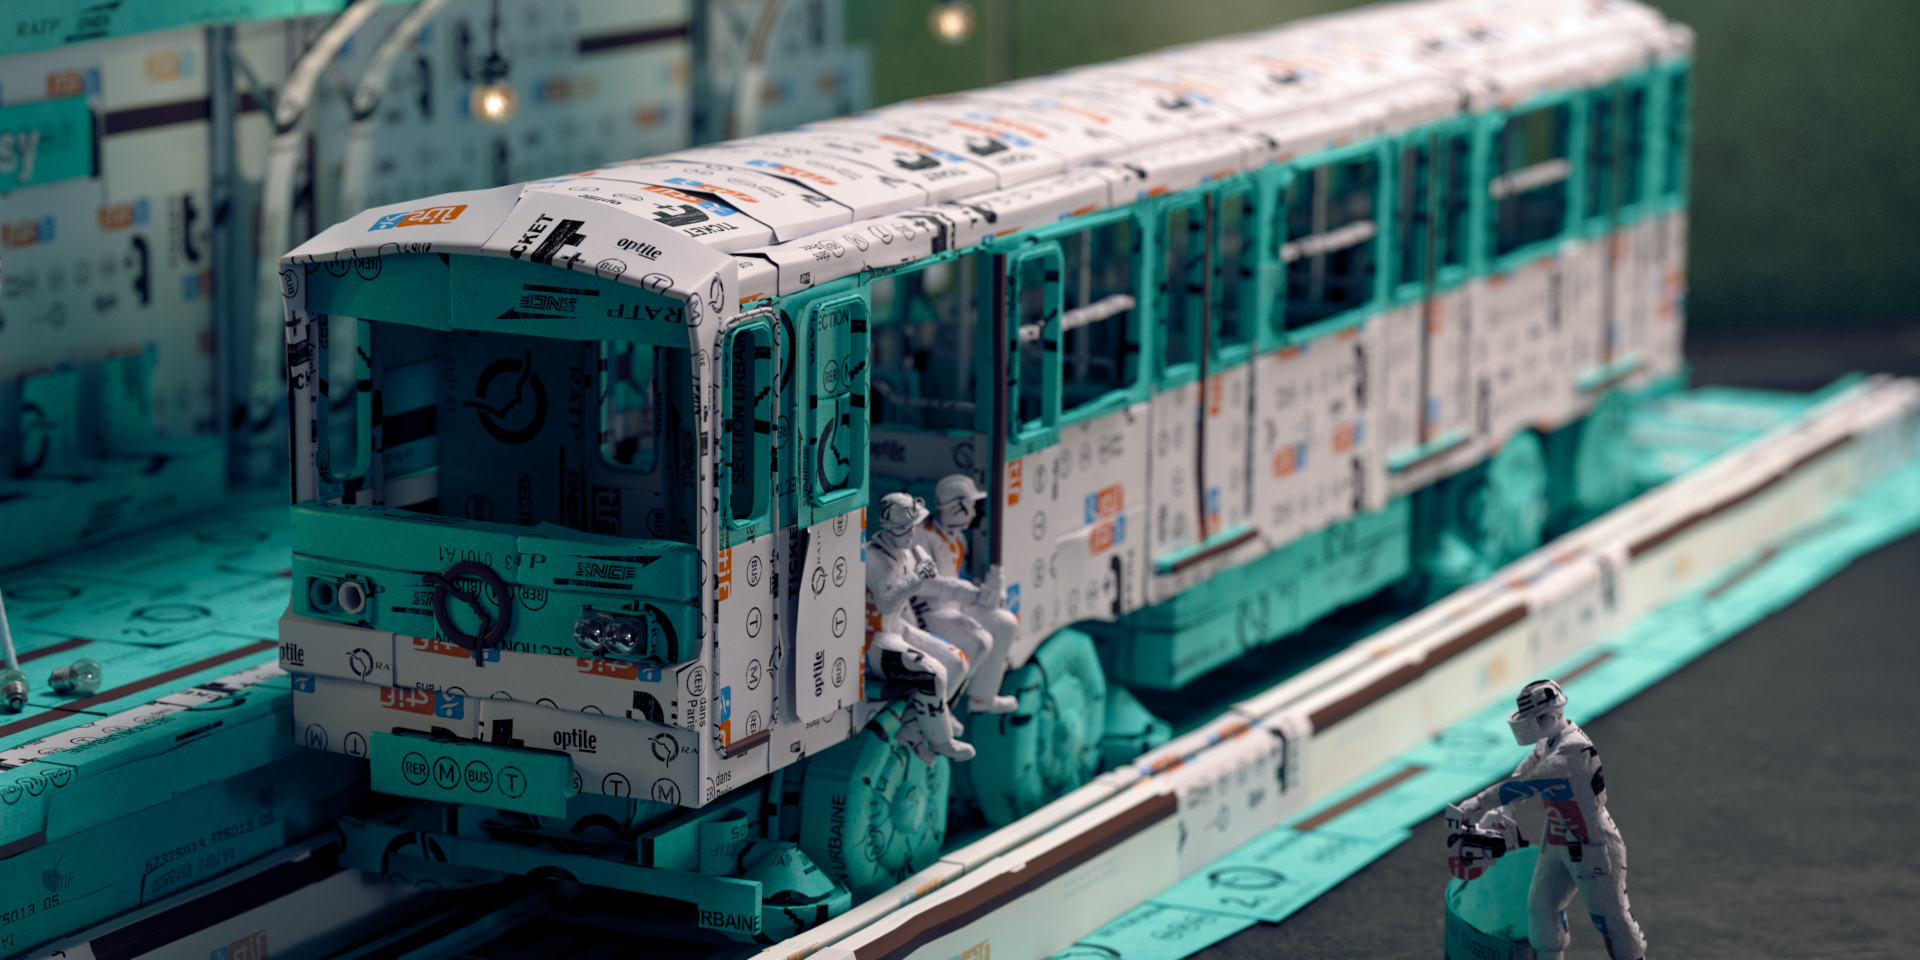 This Paris Métro made out of old train tickets is trés INCREDIBLE